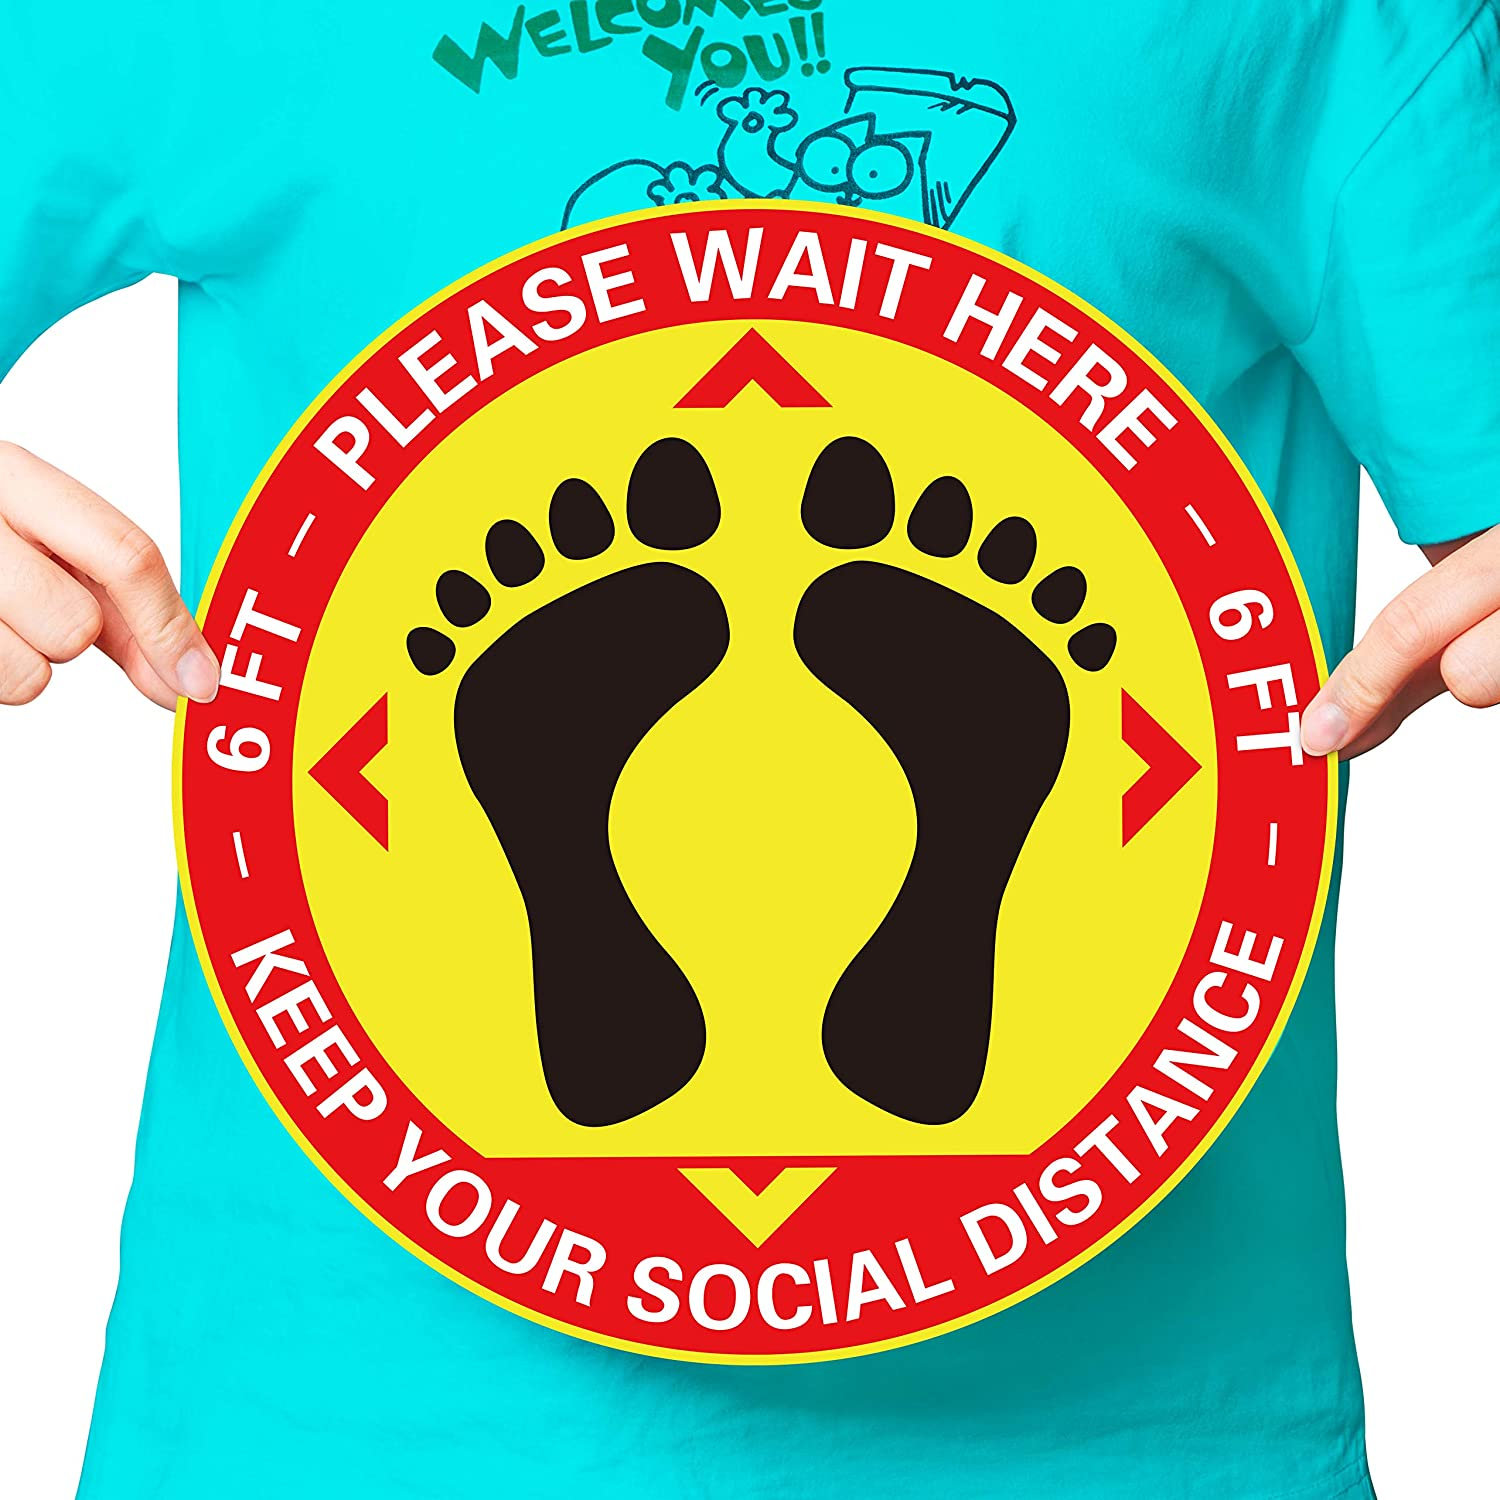 Maintain 6 Ft Distance Social Distancing Indoor Anti-Slip Floor Decal K Social Distancing Floor Sign 3 Maintain Distance Floor Sign Yellow 12 x 12 Please Keep a Safe 6 Foot Distance